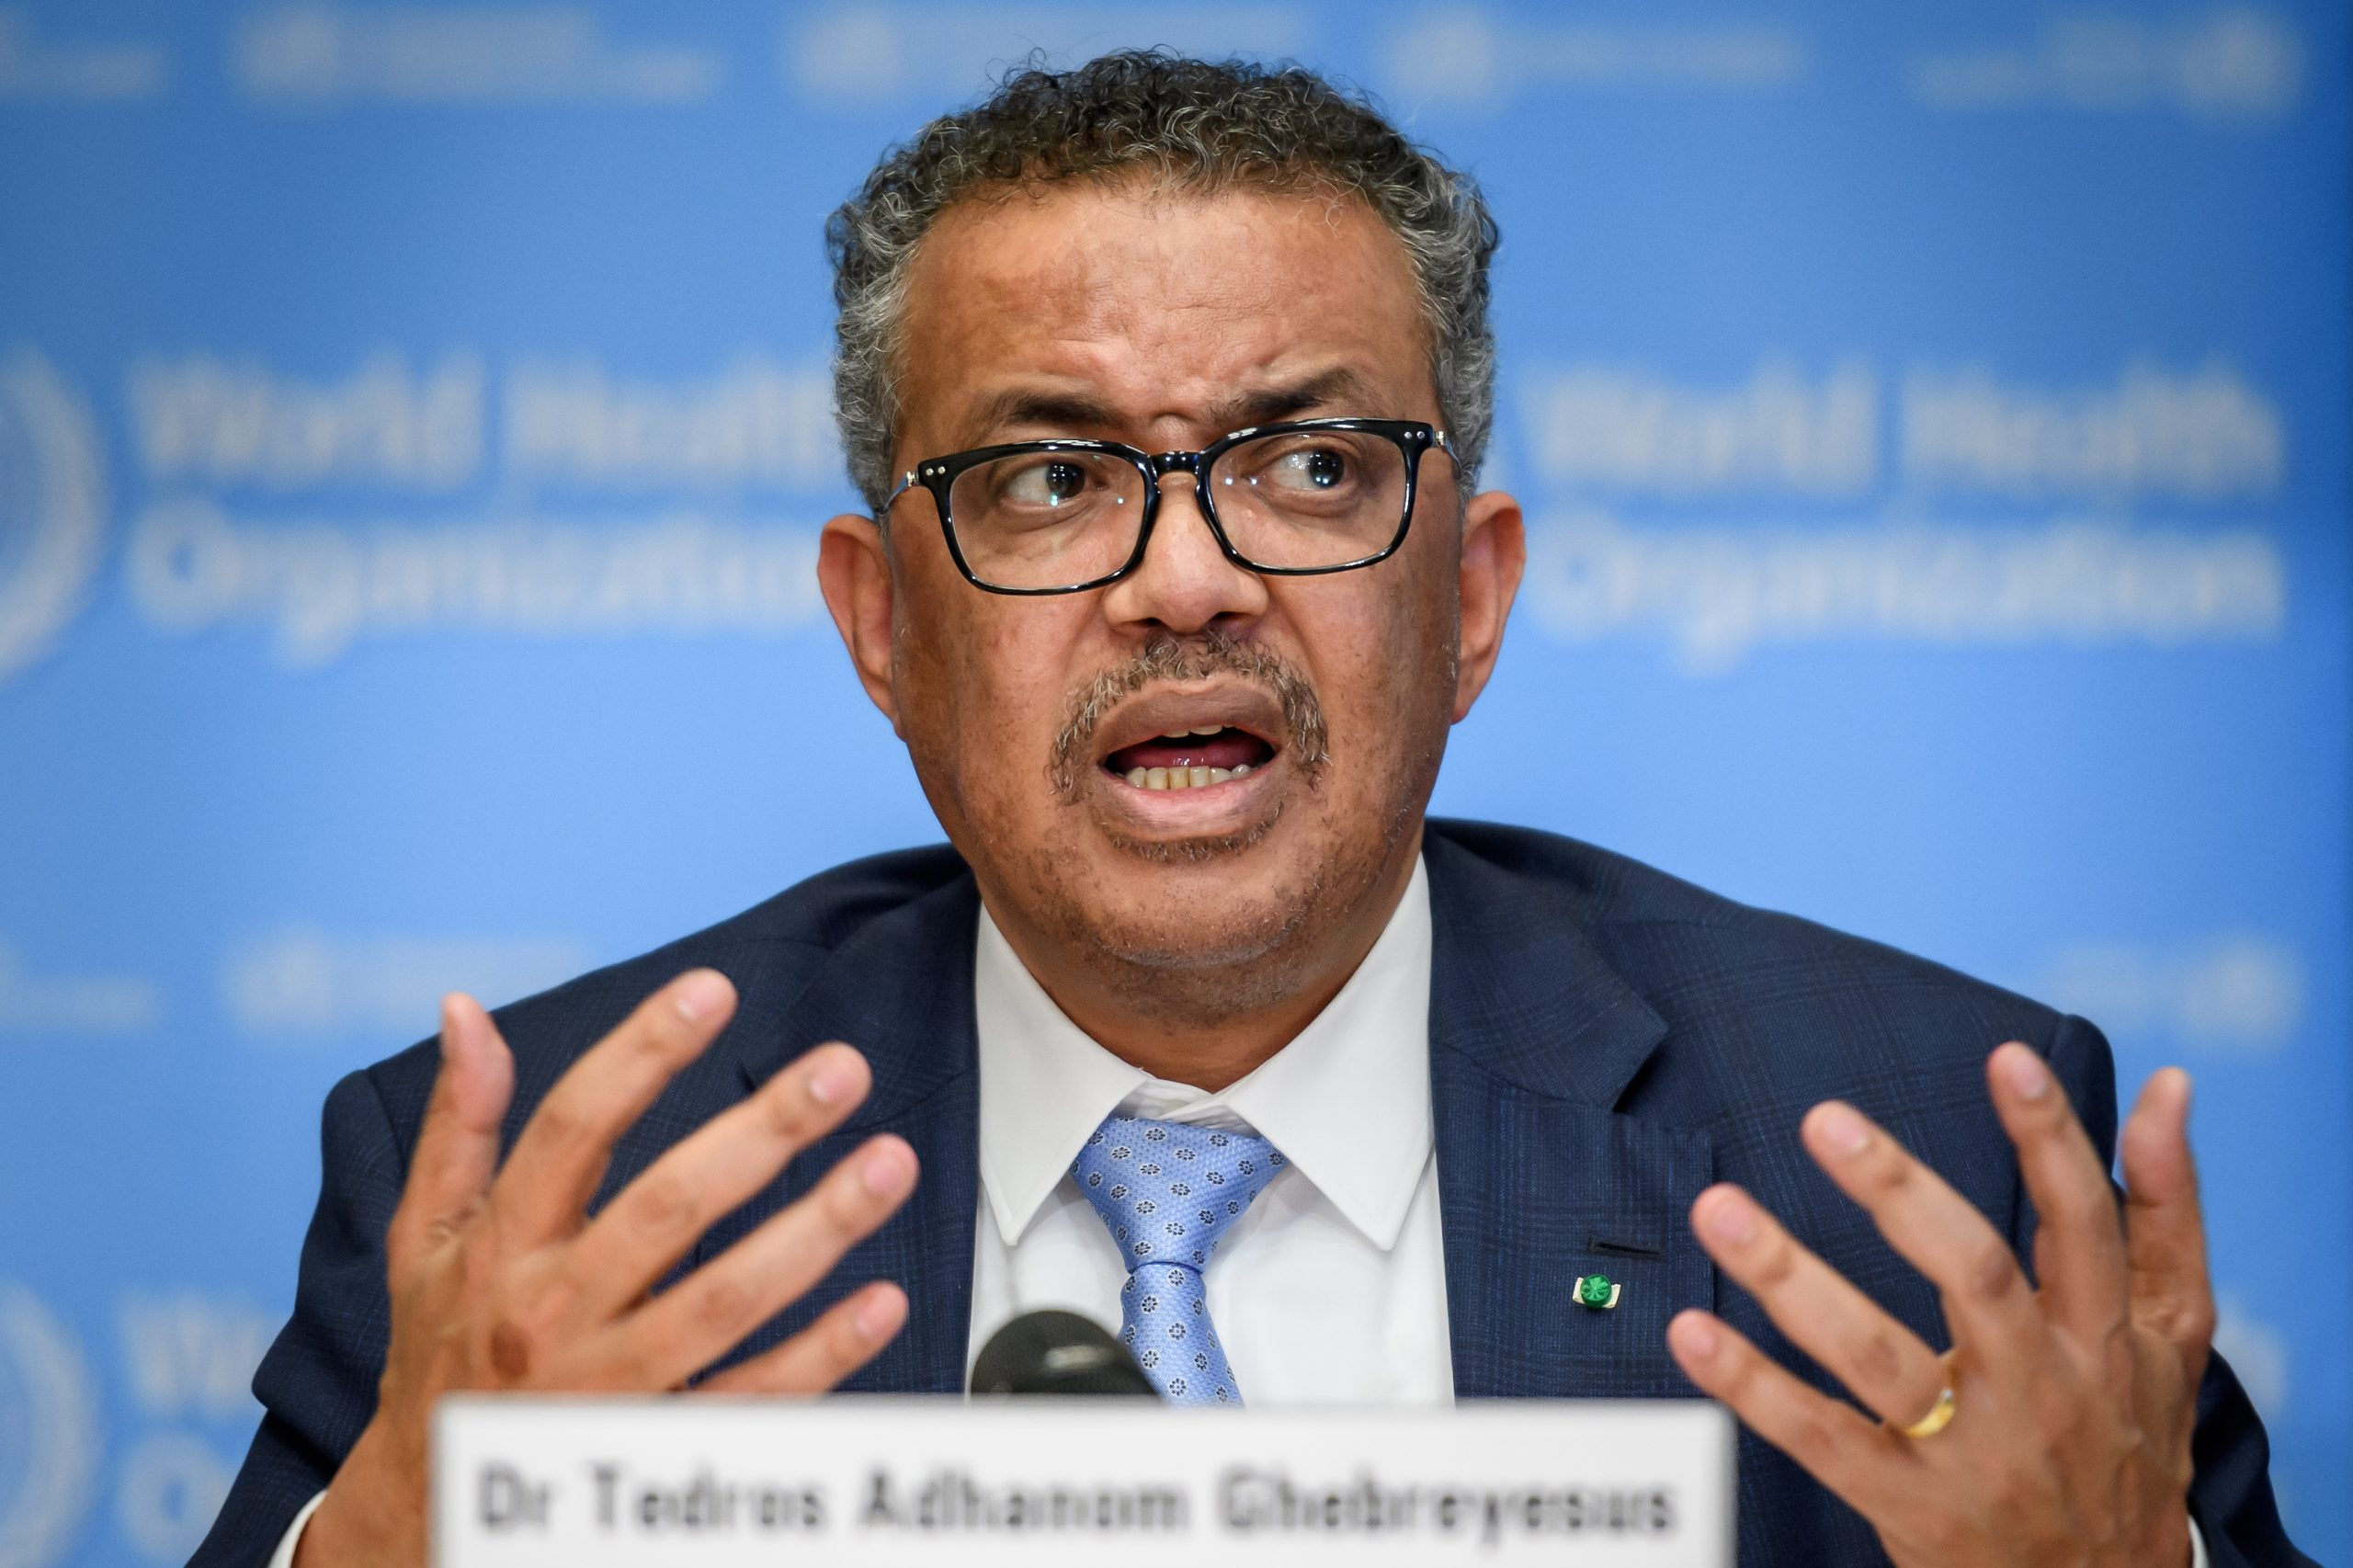 World Health Organization (WHO) Director-General Tedros Adhanom Ghebreyesus (Photo by FABRICE COFFRINI/AFP via Getty Images)